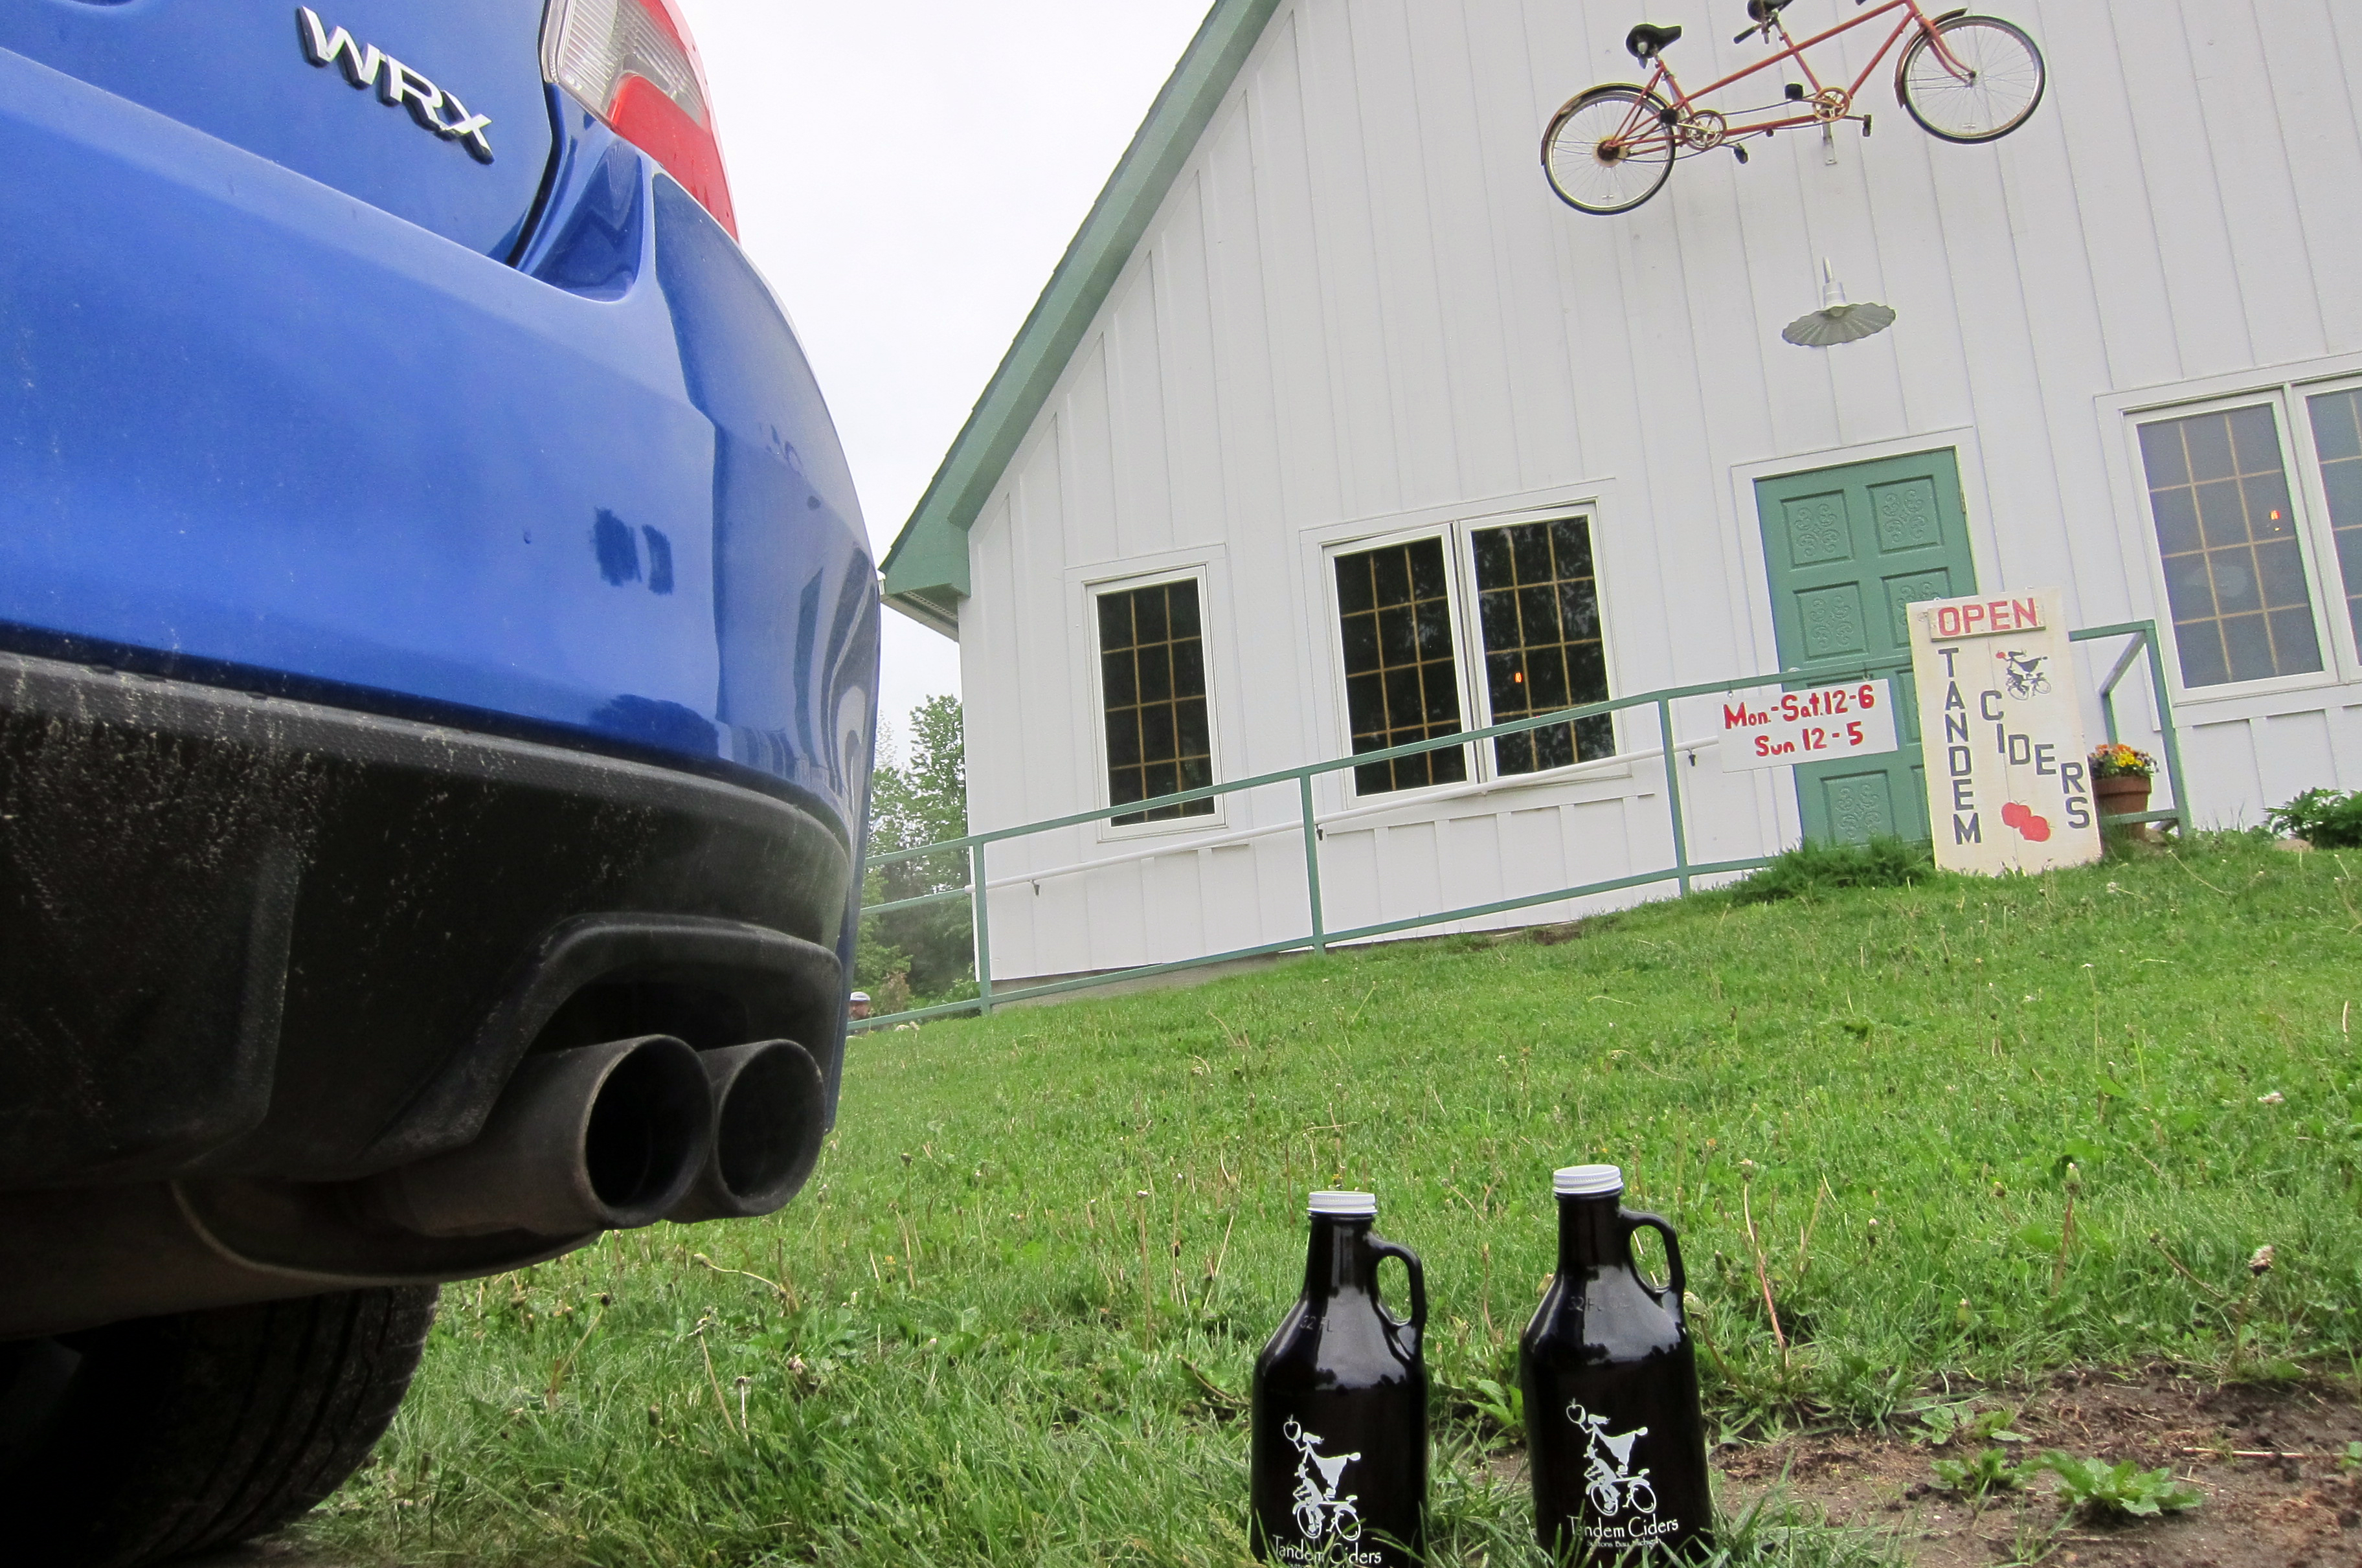 Tandem Ciders in Suttons Bay is a refreshing stop-over after a long hike.